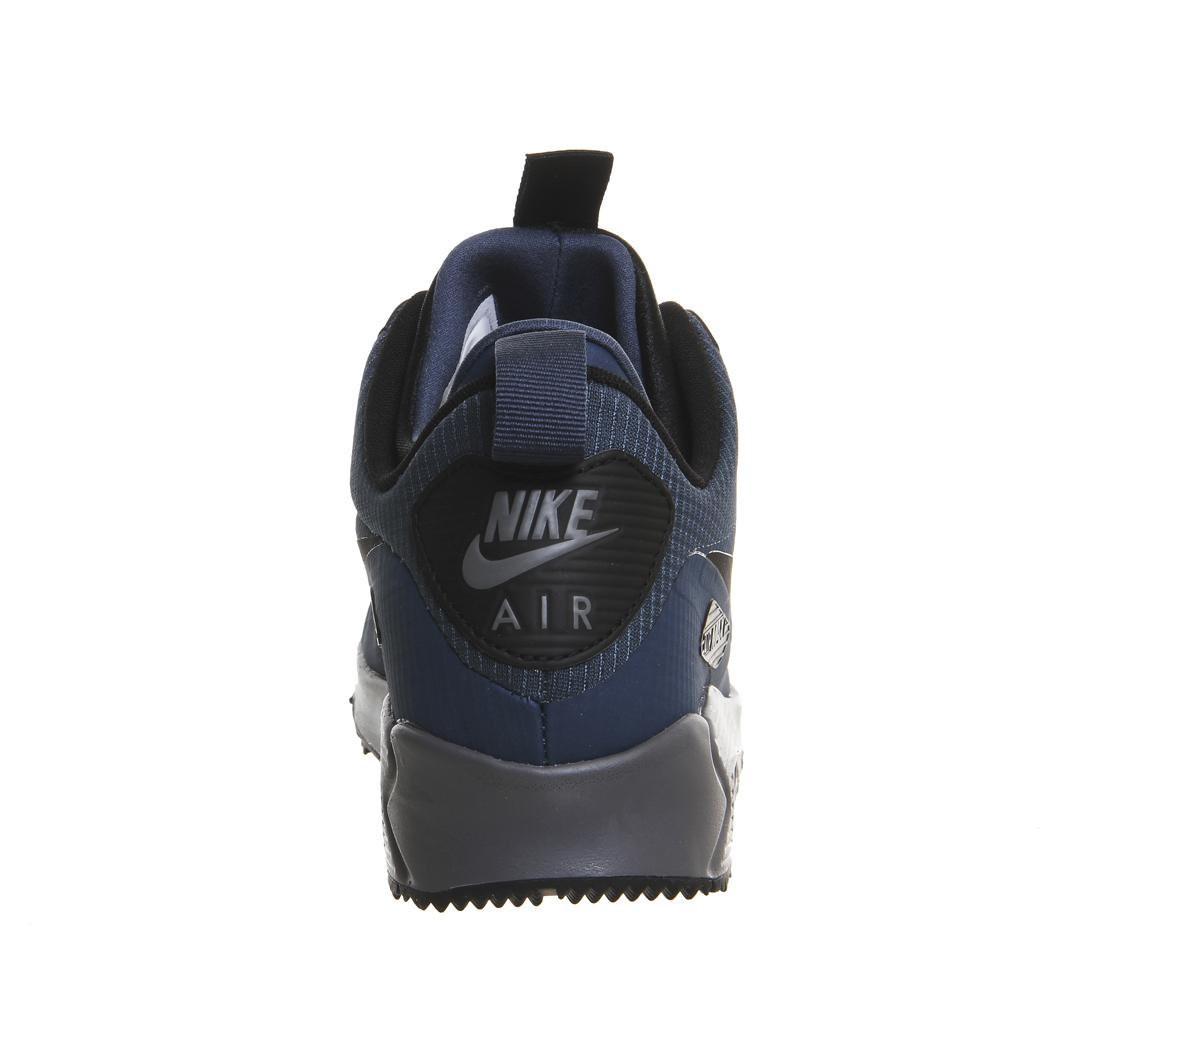 Nike Men's Air Max 90 Mid Winter Squadron Blue Black Shoes